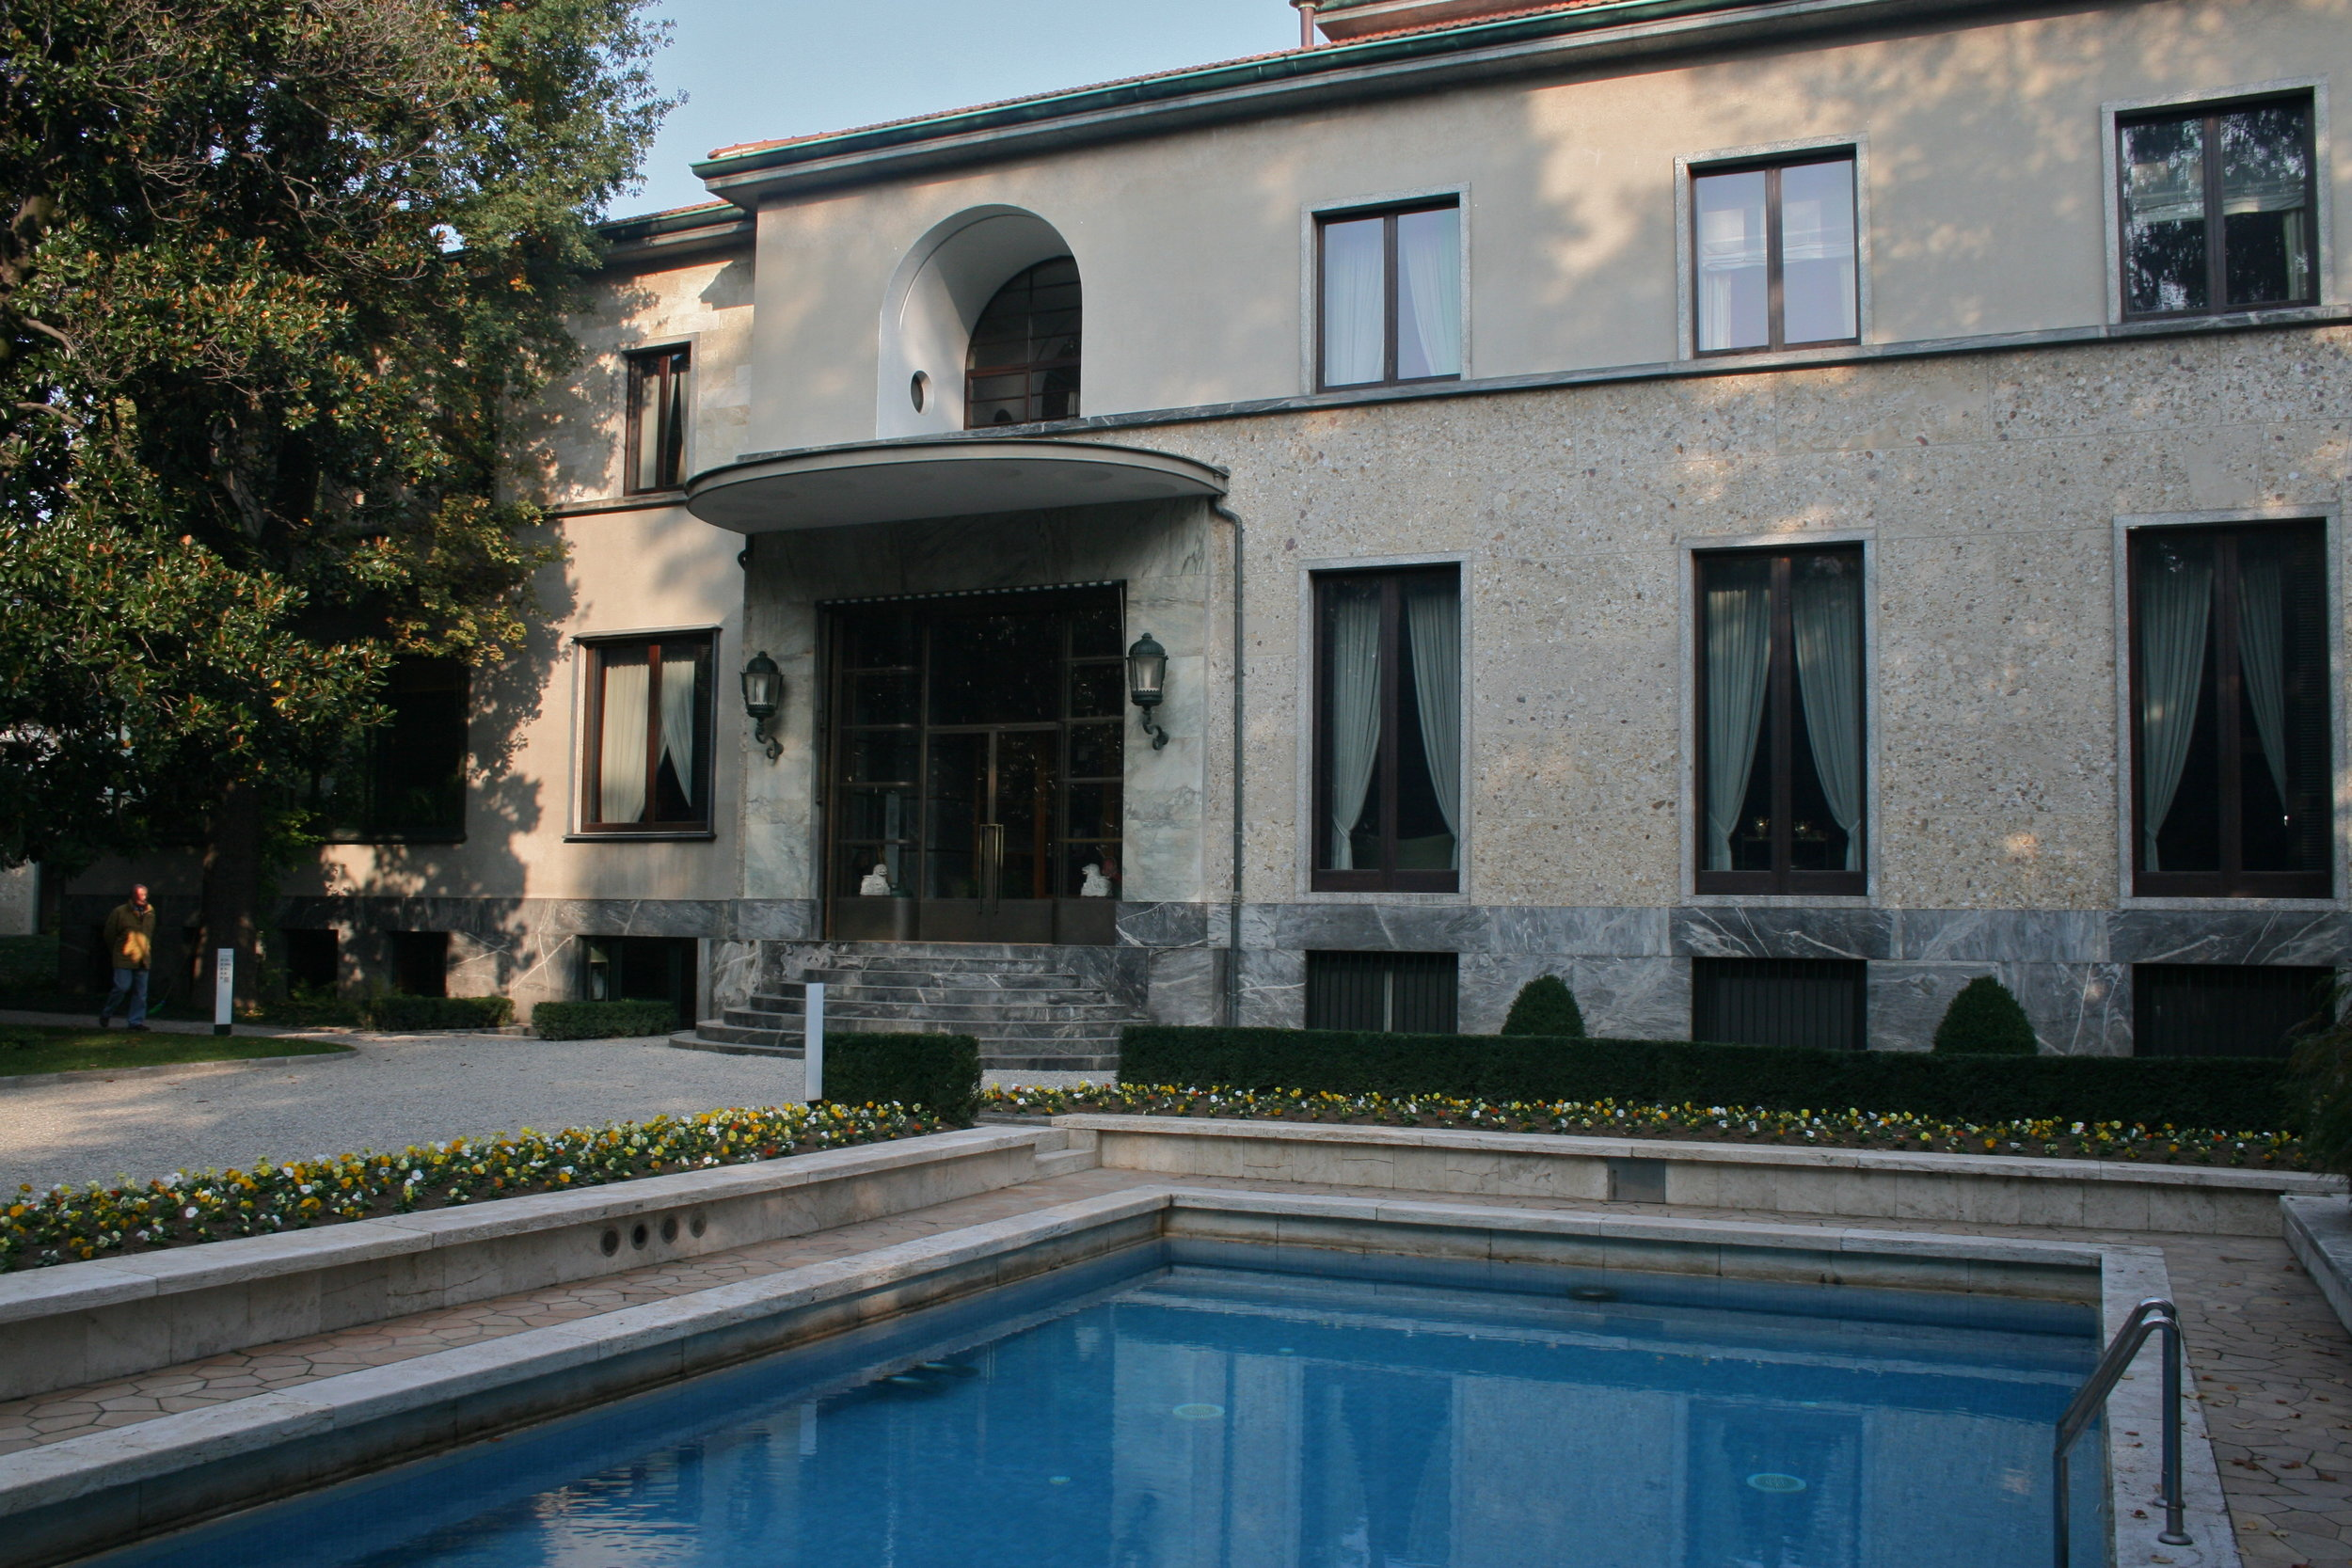 The stunning Villa Necchi Campiglio sets a luxuriously dramatic scene for the ravishing 2009 Italian production  I Am Love  directed by Luca Guadagnino and starring Tilda Swinton.